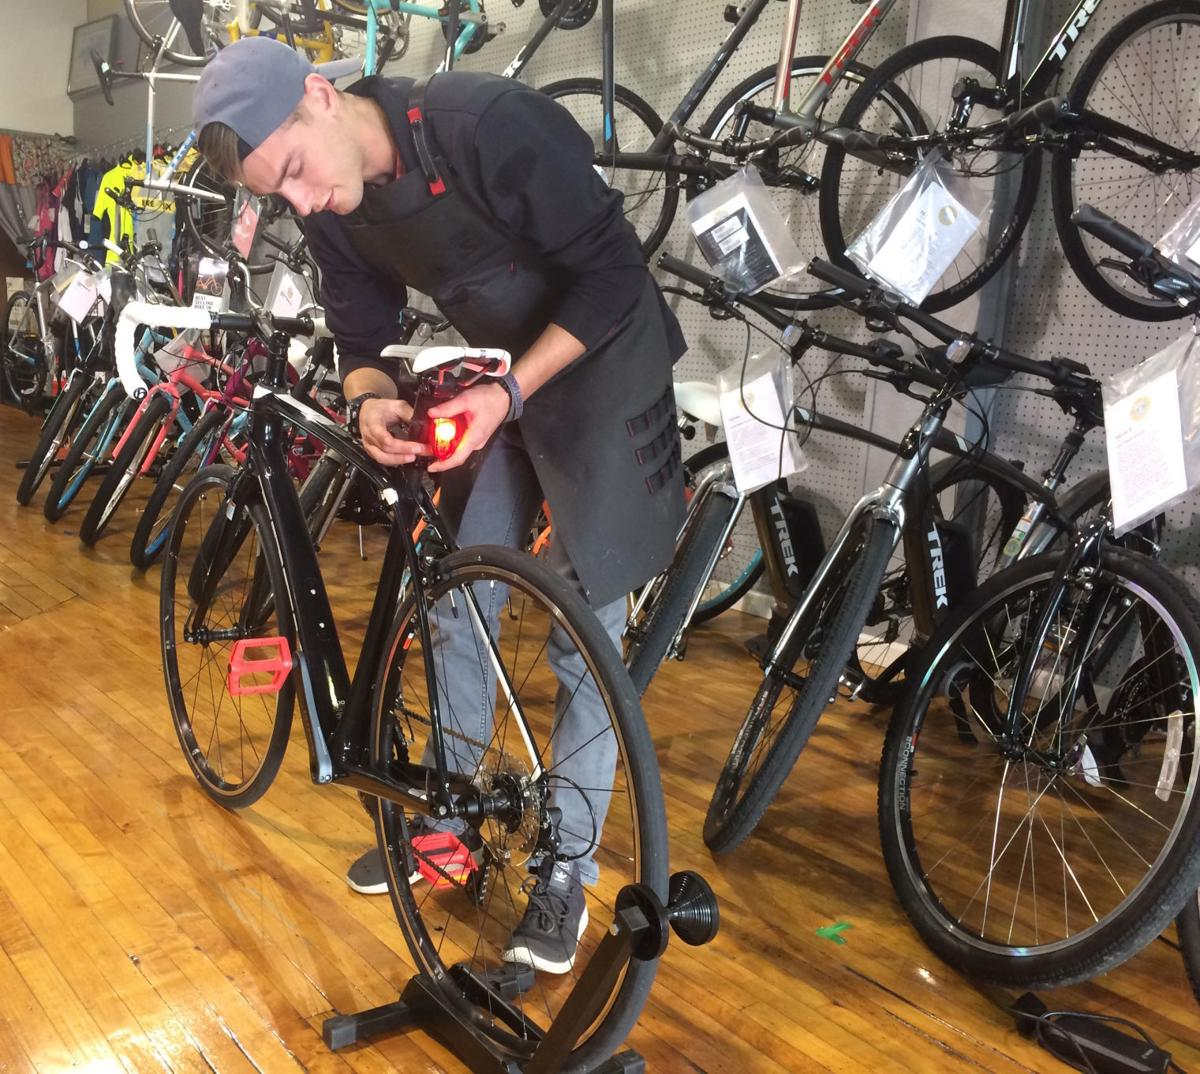 Bike safety program being put on by Neighborhood Watch group